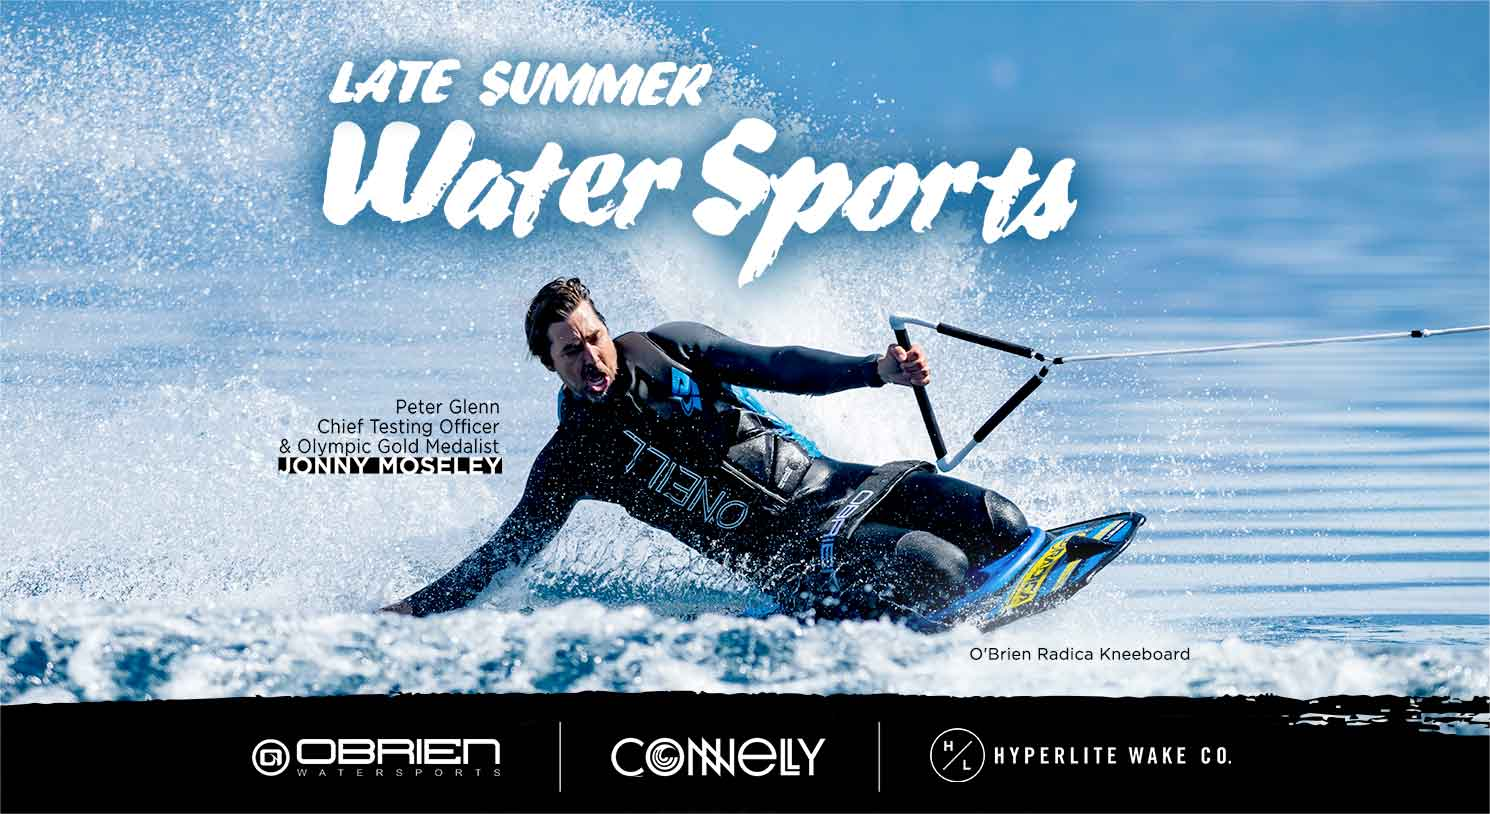 Late Summer Water Sports